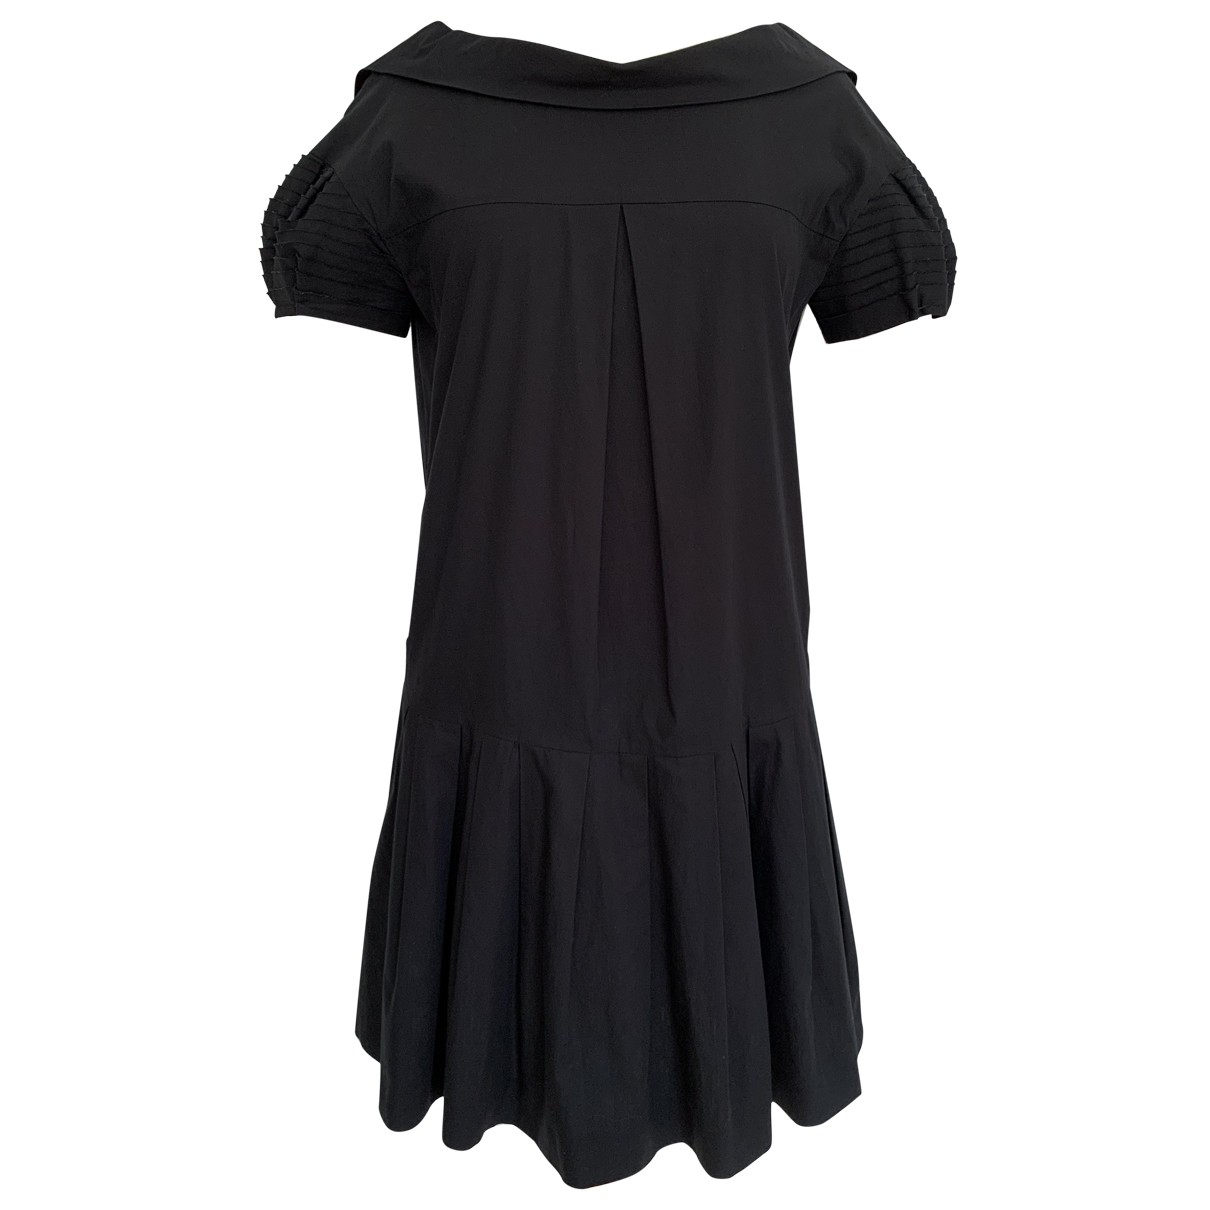 Miu Miu \N Black Cotton dress for Women 40 IT